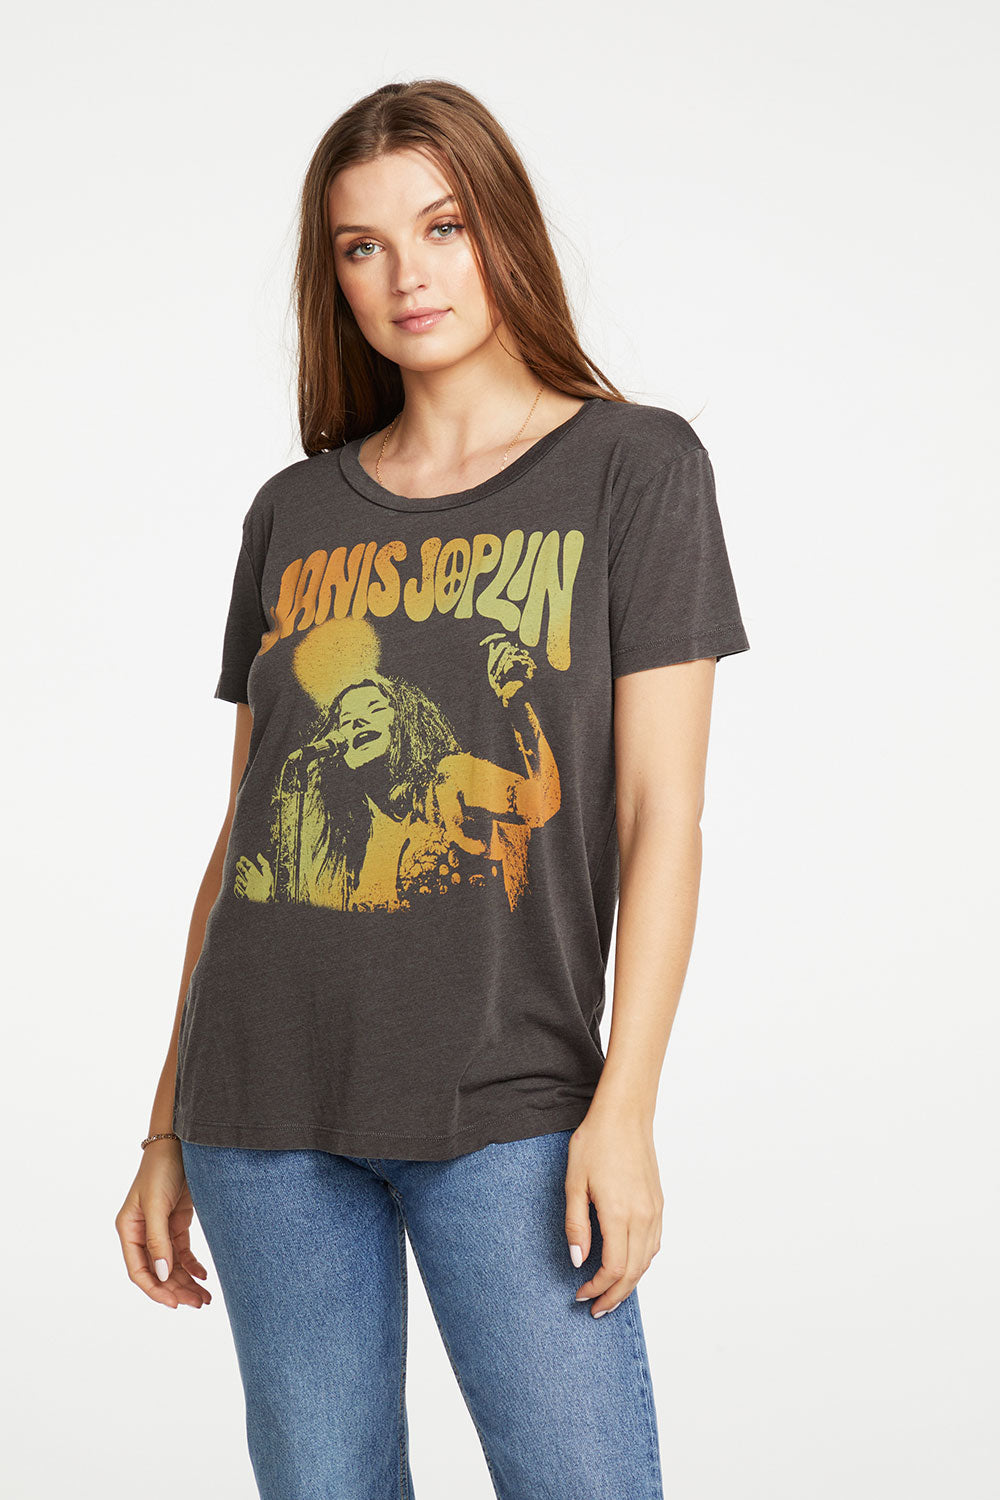 Janis Joplin - Live In San Francisco WOMENS chaserbrand4.myshopify.com